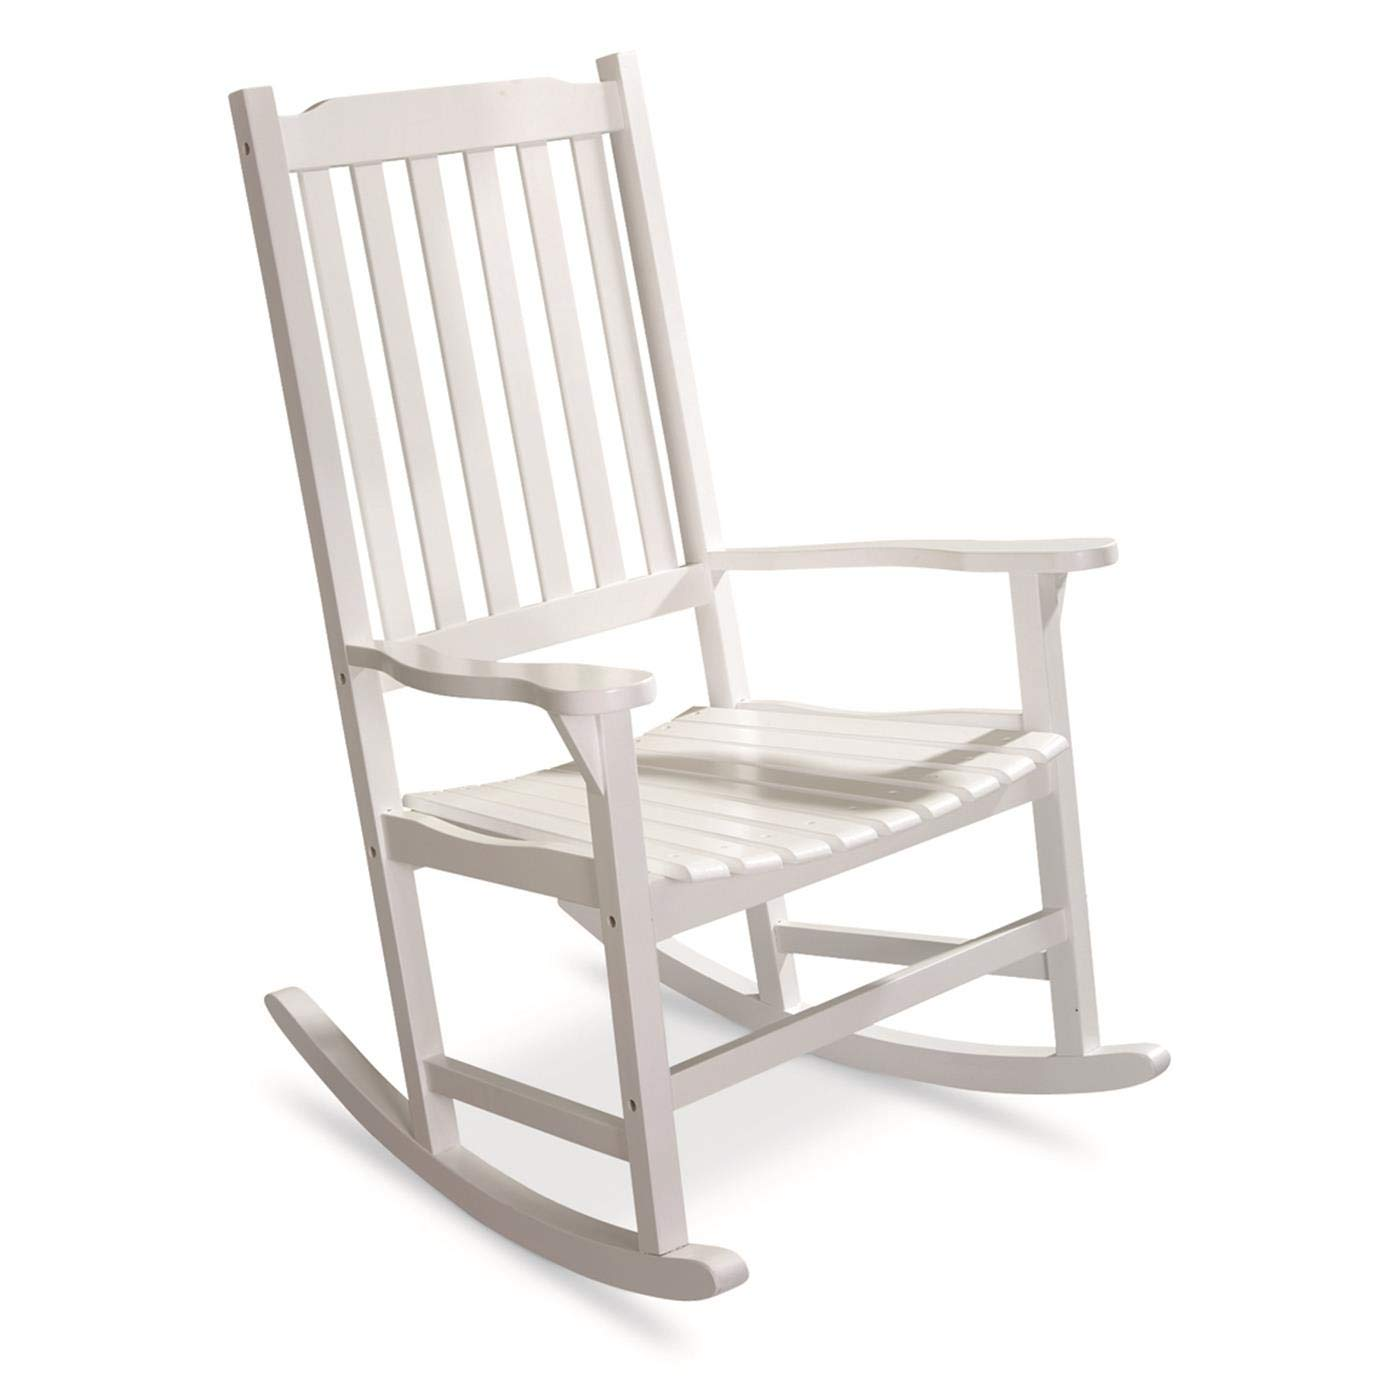 Strange Castlecreek Oversized Rocking Chair 400 Lb Capacity White Gmtry Best Dining Table And Chair Ideas Images Gmtryco